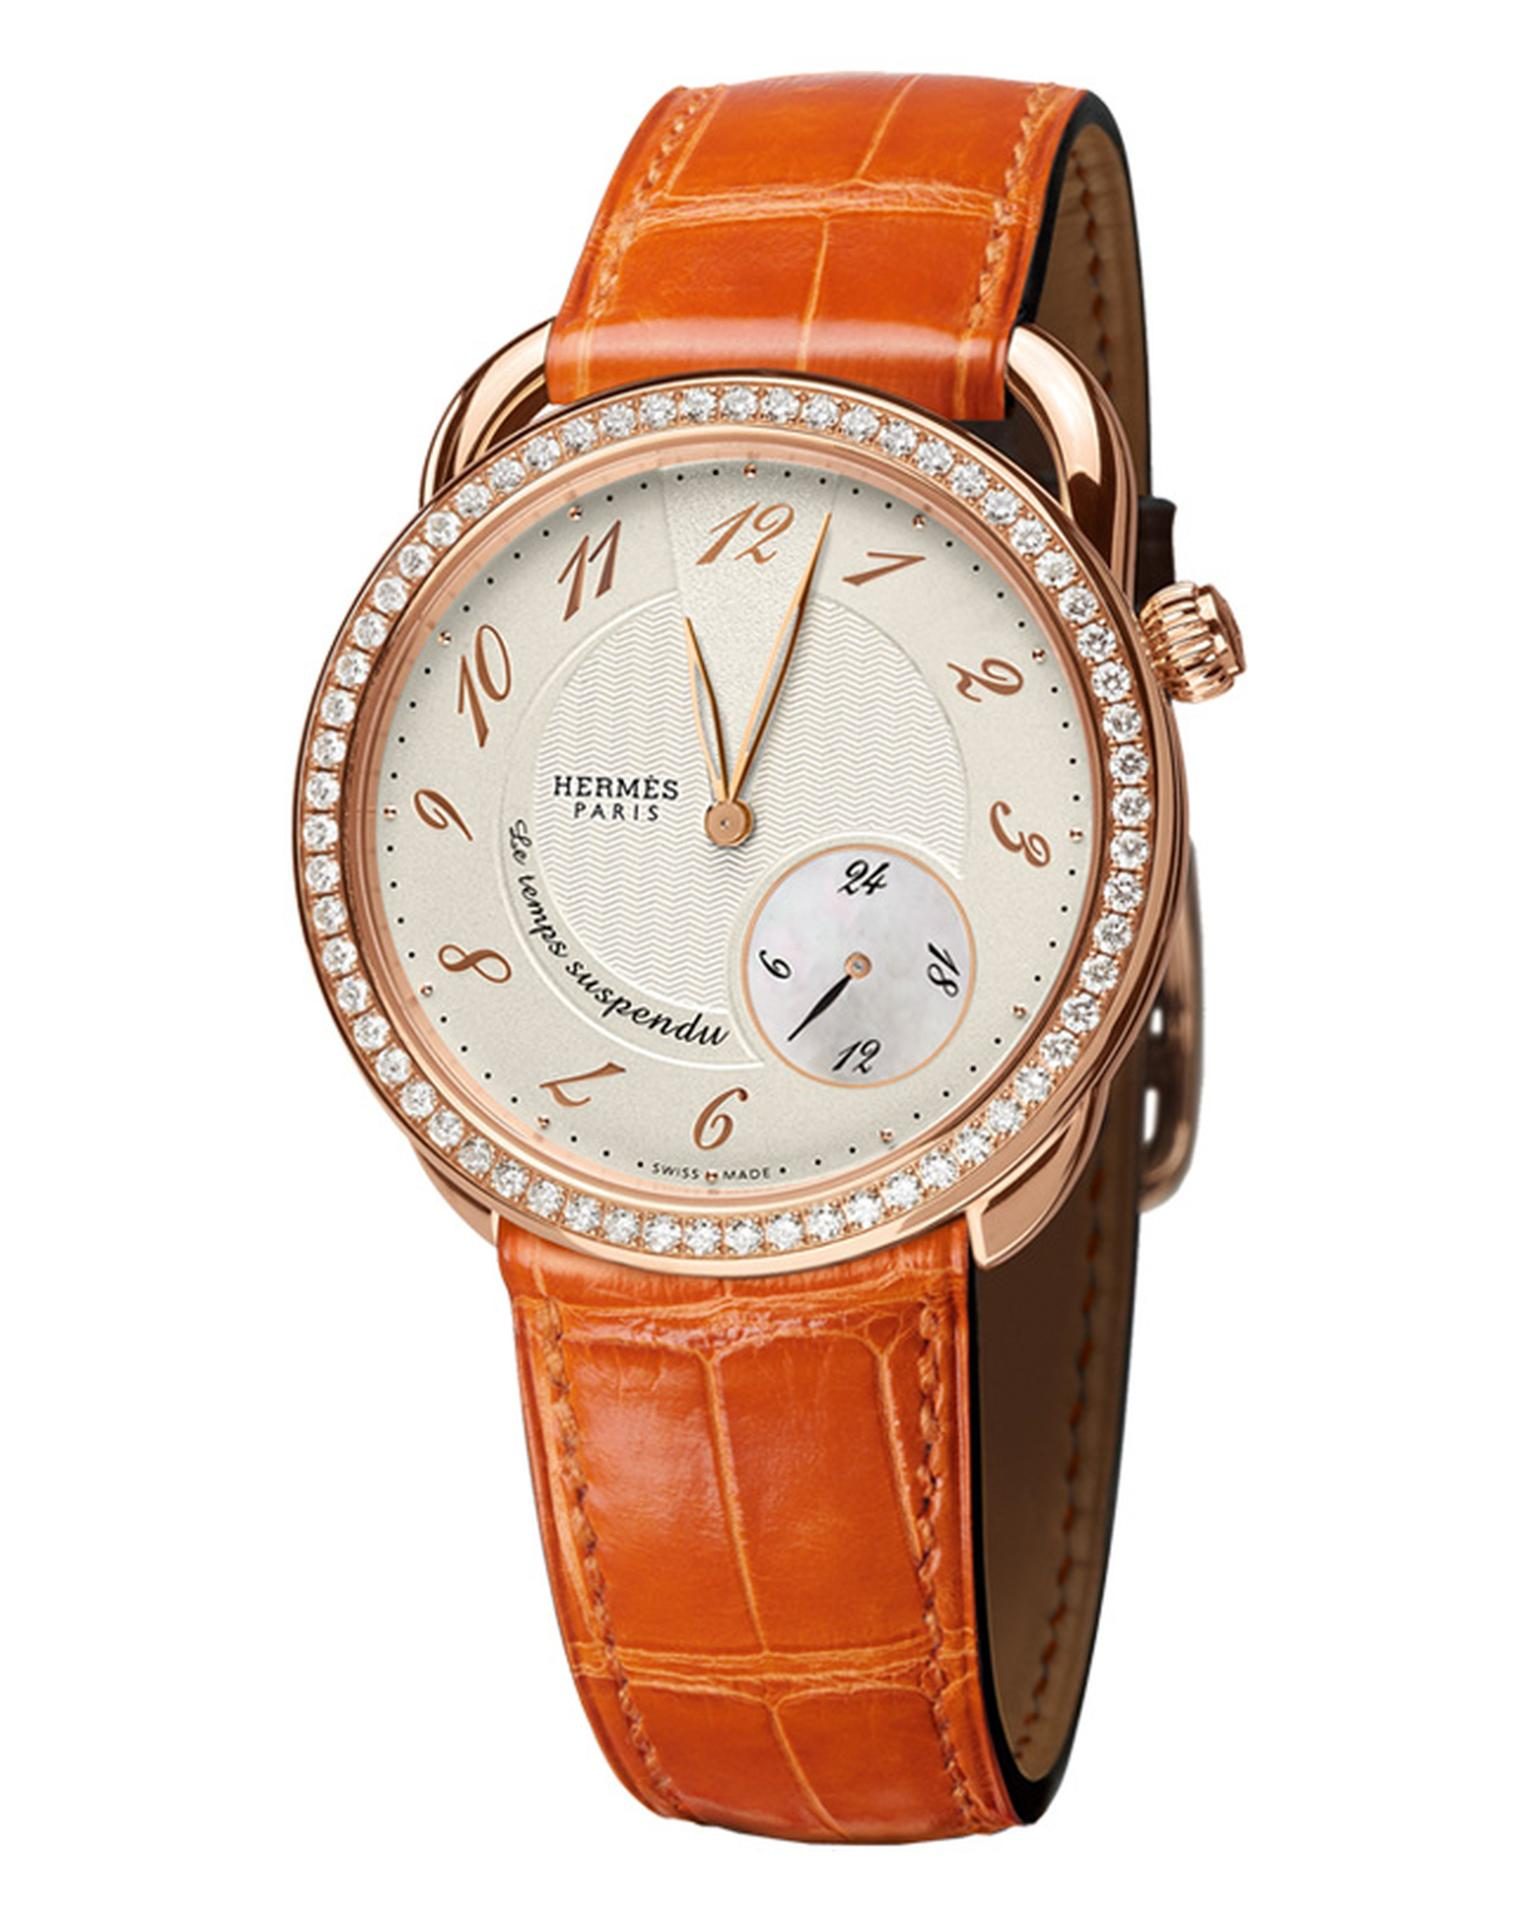 Hermes Arceau Le Temps Suspendu rose gold and diamond watch_20131031_Main